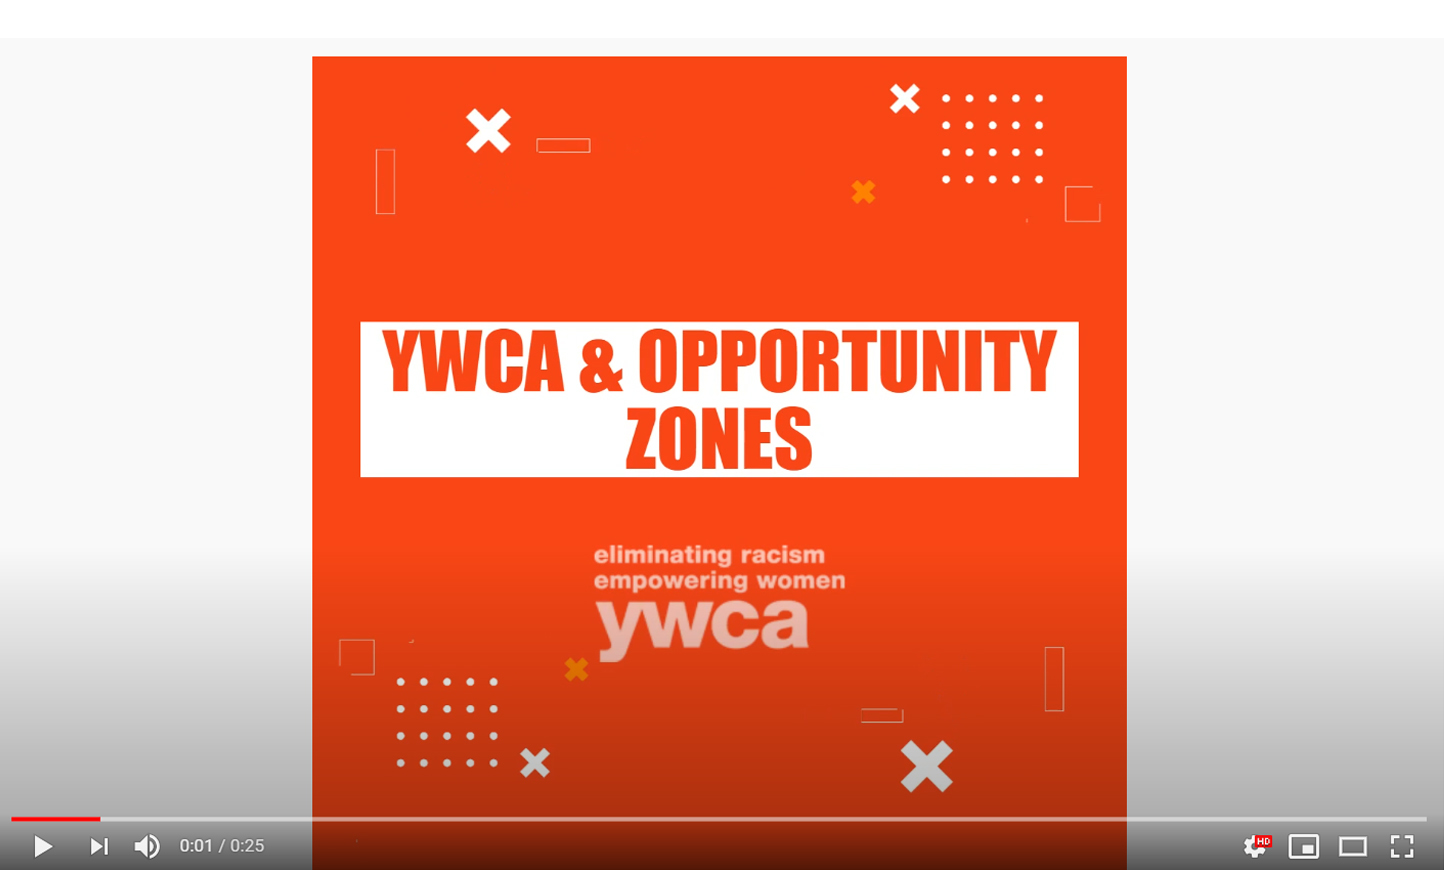 YWCA Opportunity Zones Map Video